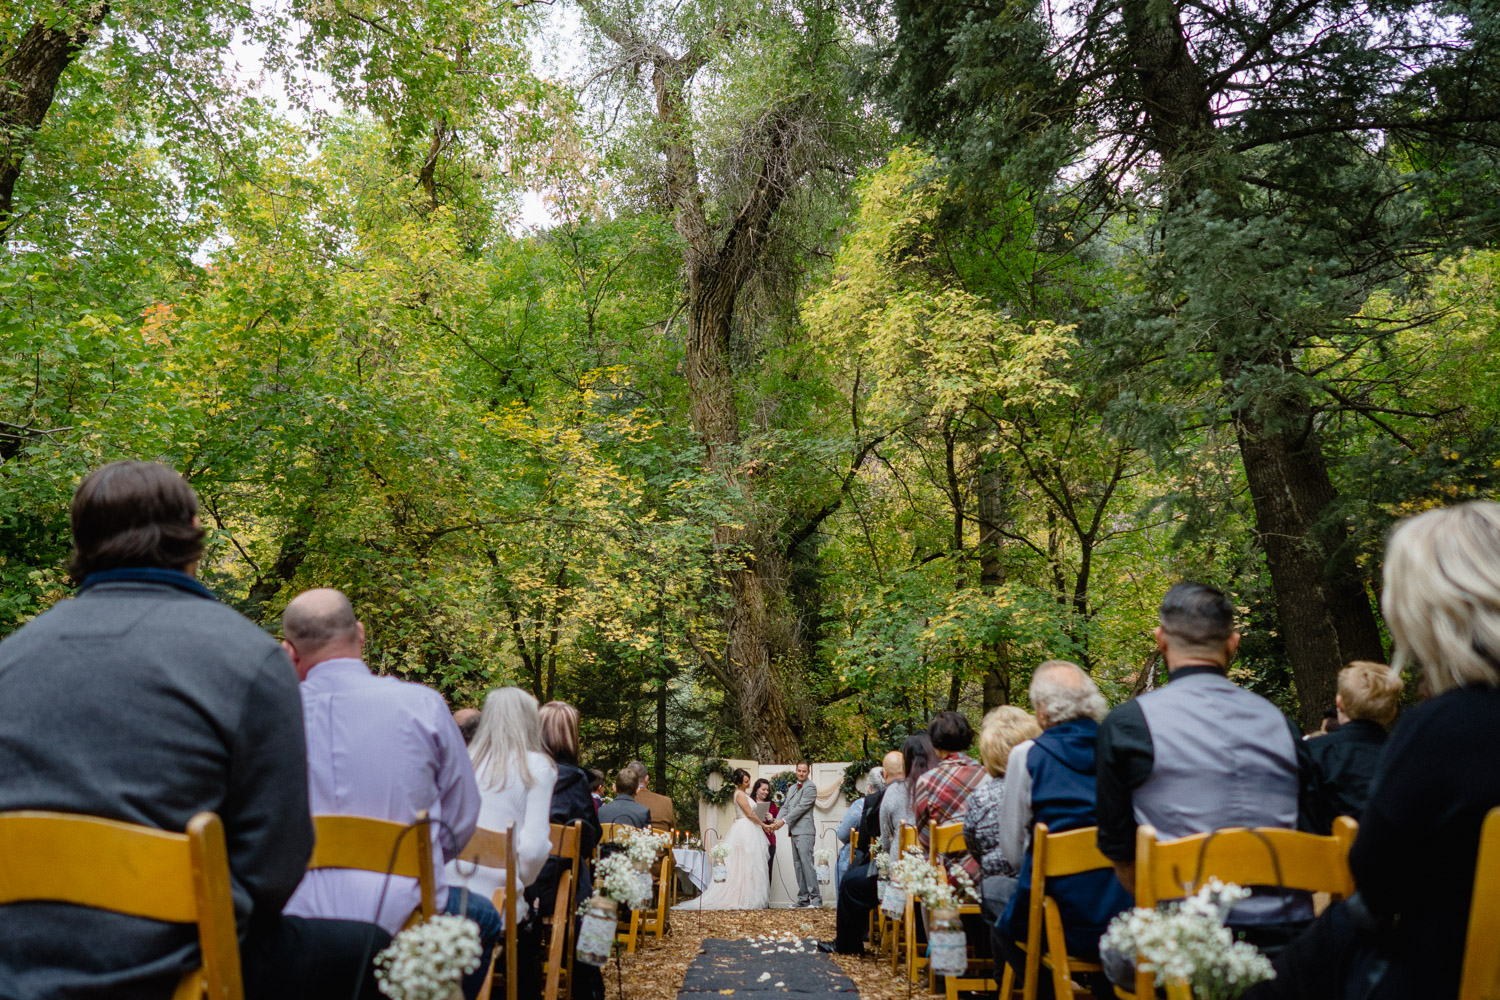 wedding guests and bride and groom at outdoor altar millcreek canyon